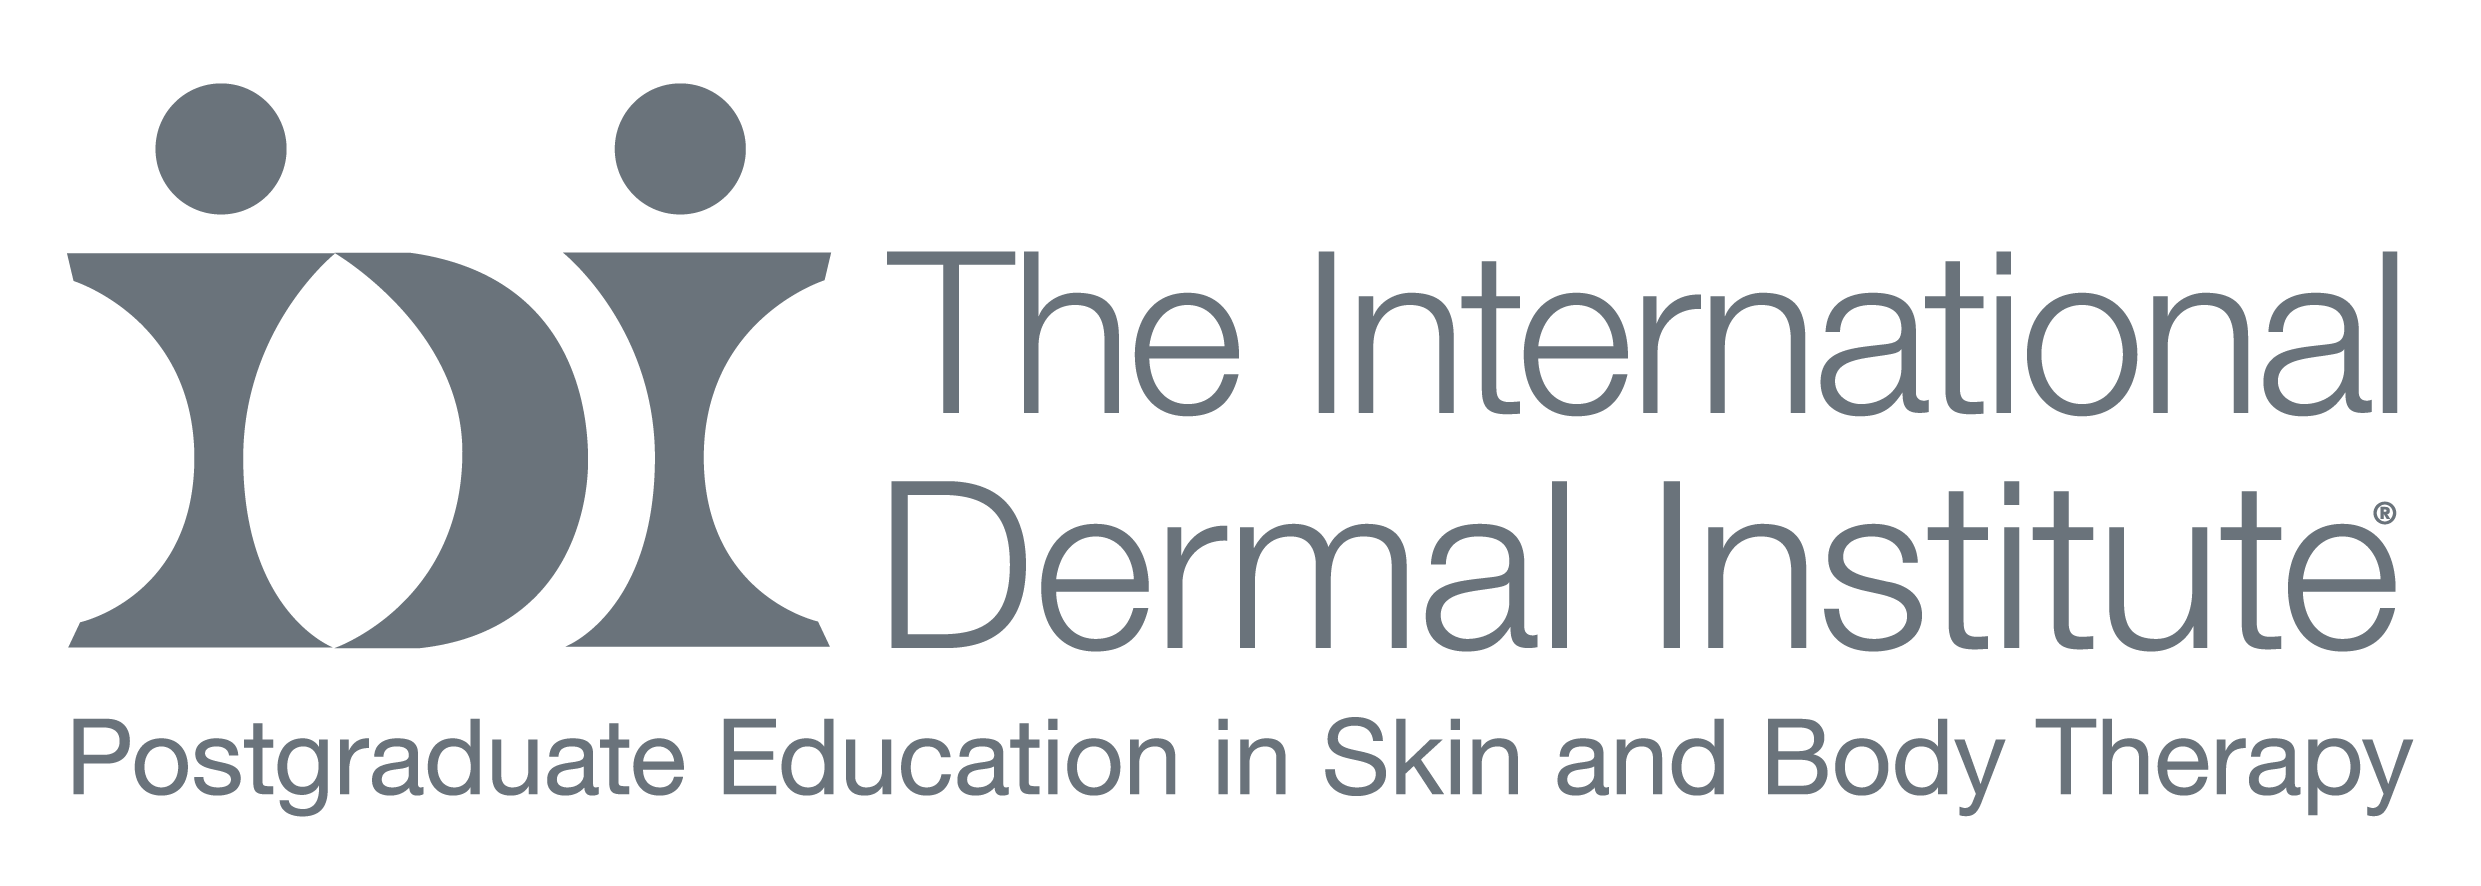 The International Dermal Institute